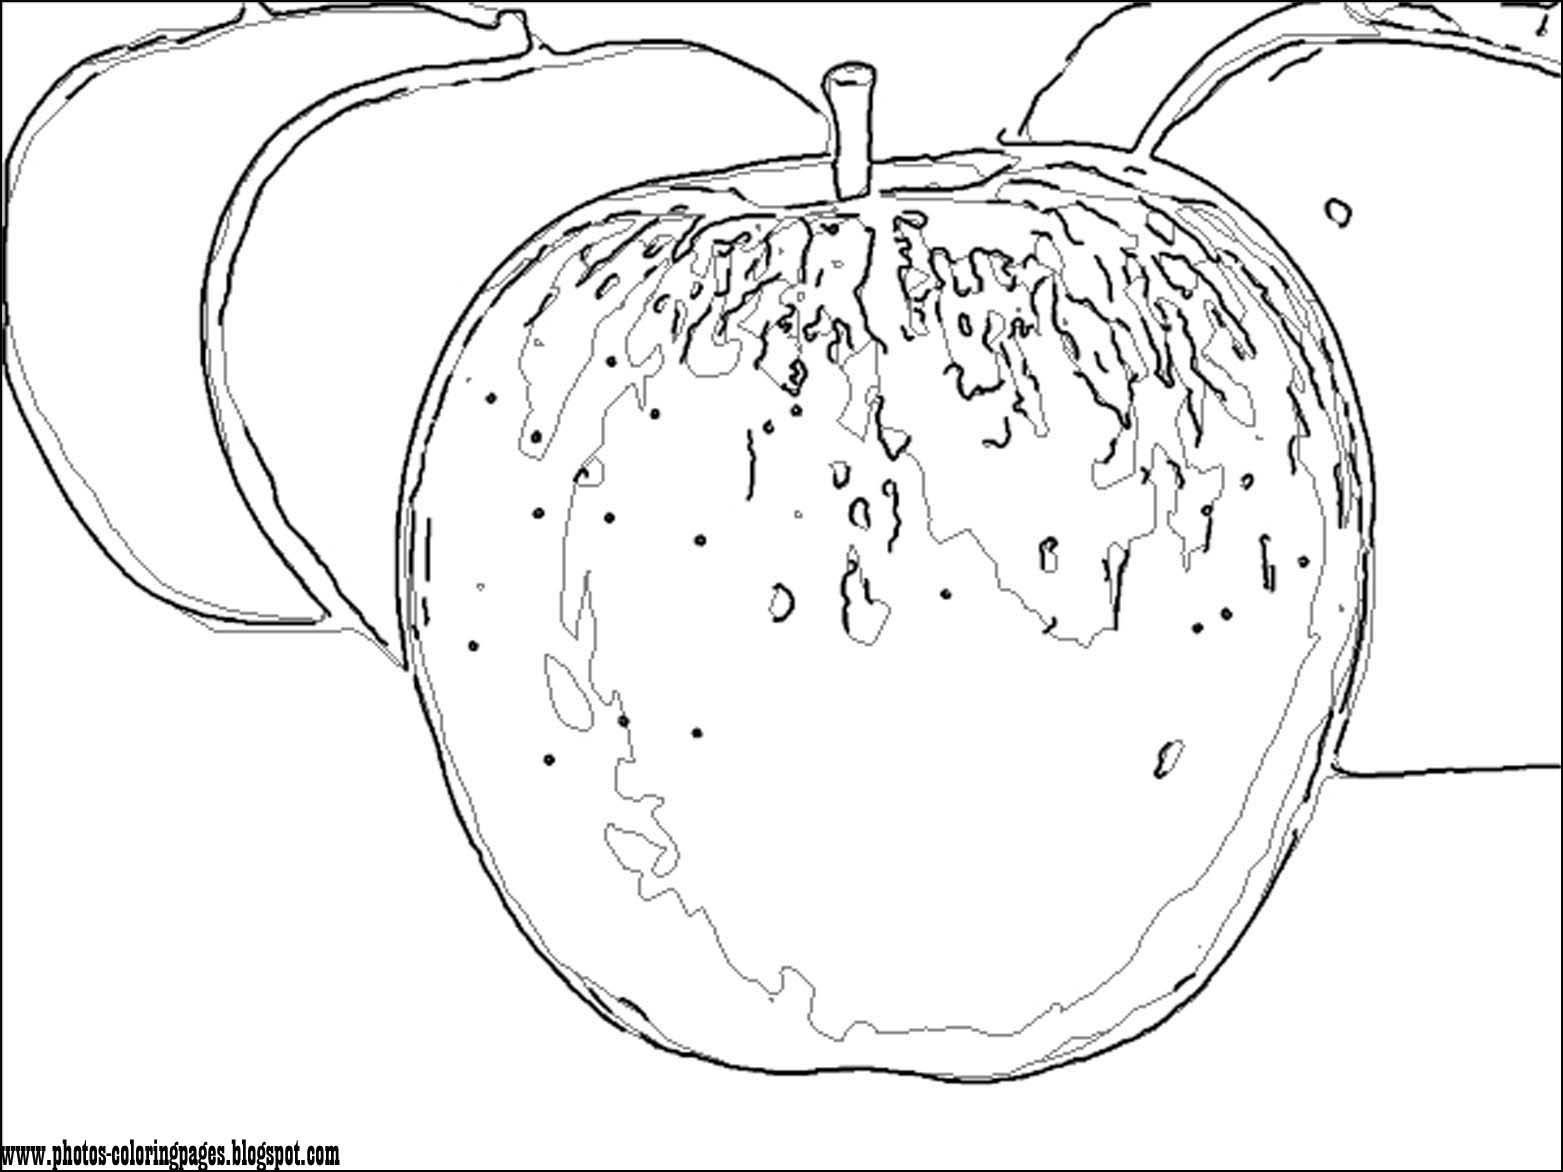 Cartoon Apple Coloring Pages : The cartoon coloring pages photos page of most